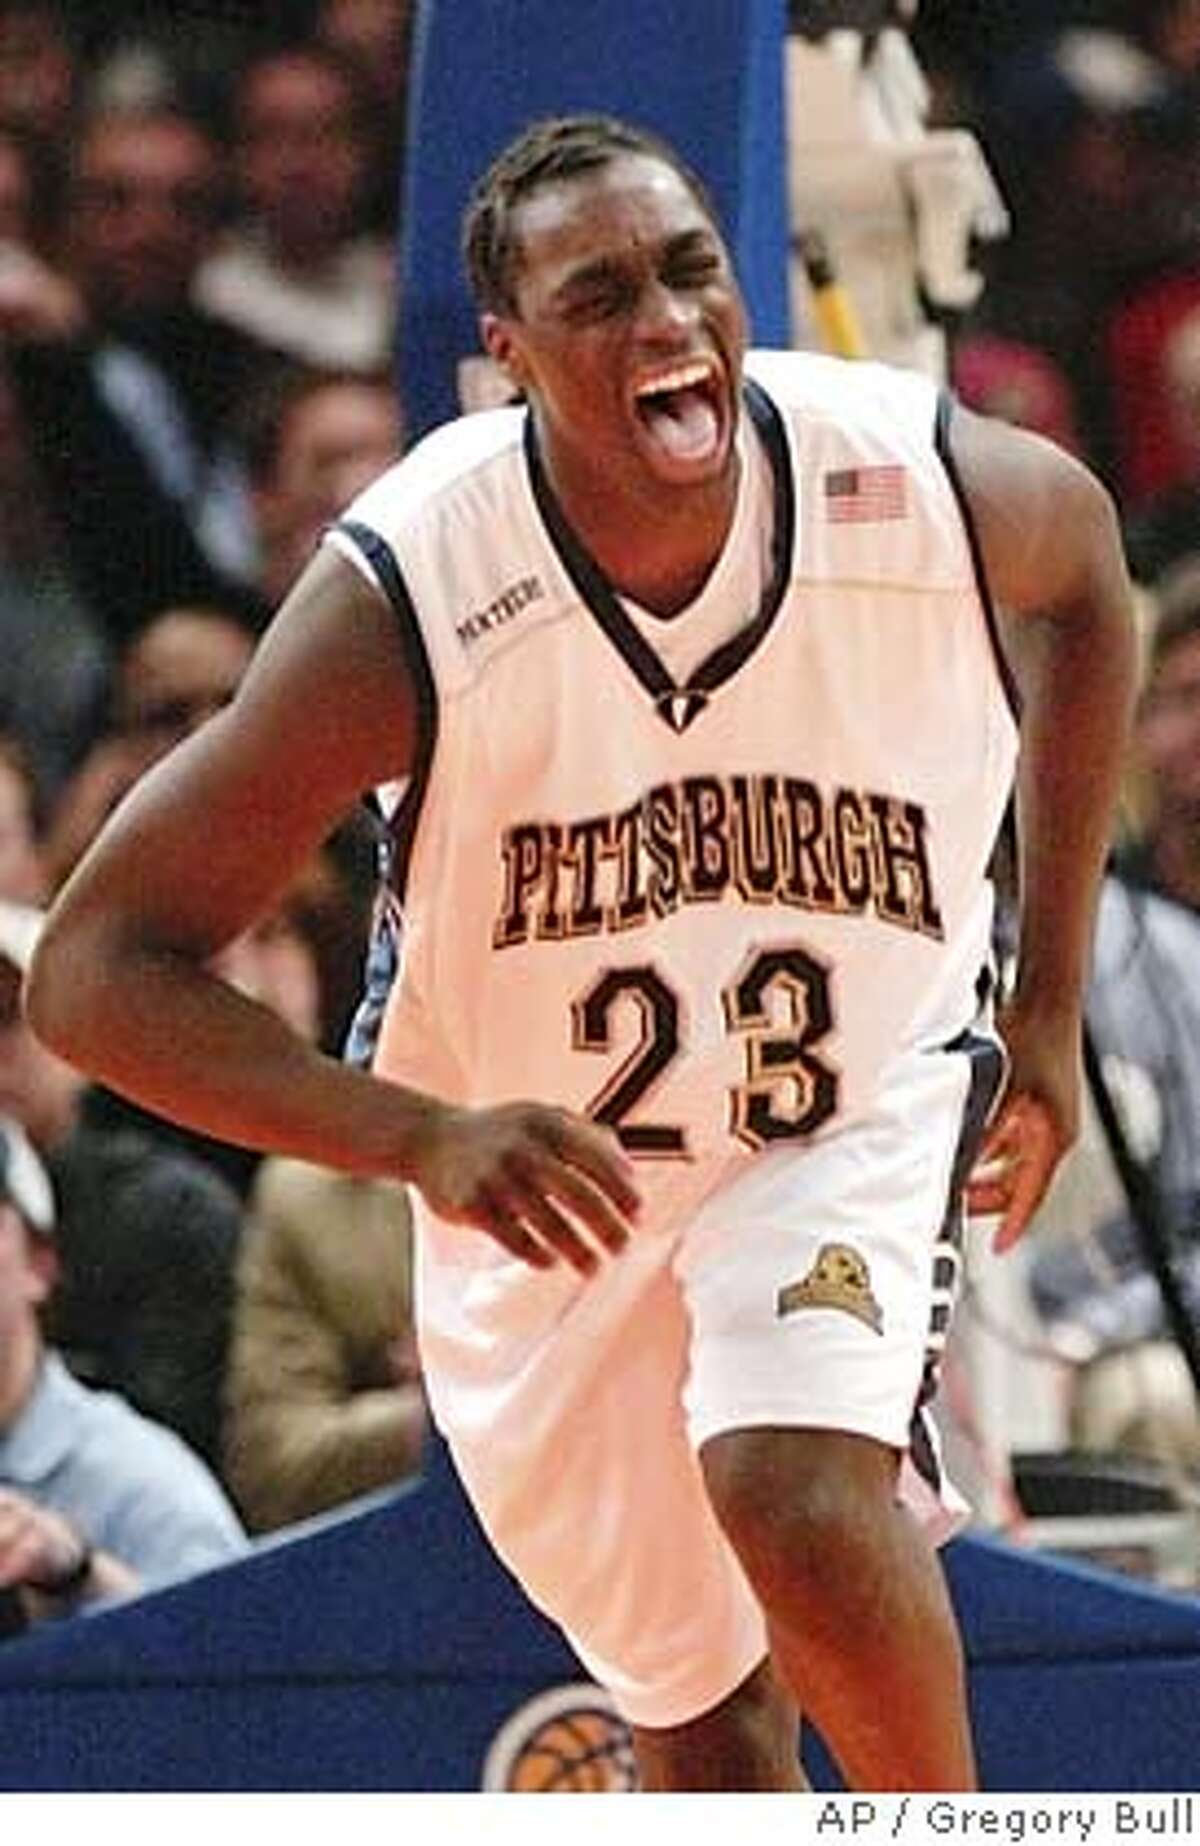 Pittsburgh's Chris Taft reacts after he dunks against Boston College in the second half of a Big East Championship semifinals game Friday, March 12, 2004, at New York's Madison Square Garden. (AP Photo/Gregory Bull) Pitts Chris Taft and his teammates are not happy that the Panthers, who have won 29 games, are only a No. 3 seed in the East Rutherford region. Ran on: 05-12-2005 Pitts Chris Taft wont be at a Warriors workout today, but the forward may be available when it comes time for the team to draft. Ran on: 05-12-2005 Pitts Chris Taft wont be at a Warriors workout today, but the forward may be available when it comes time for the team to draft.